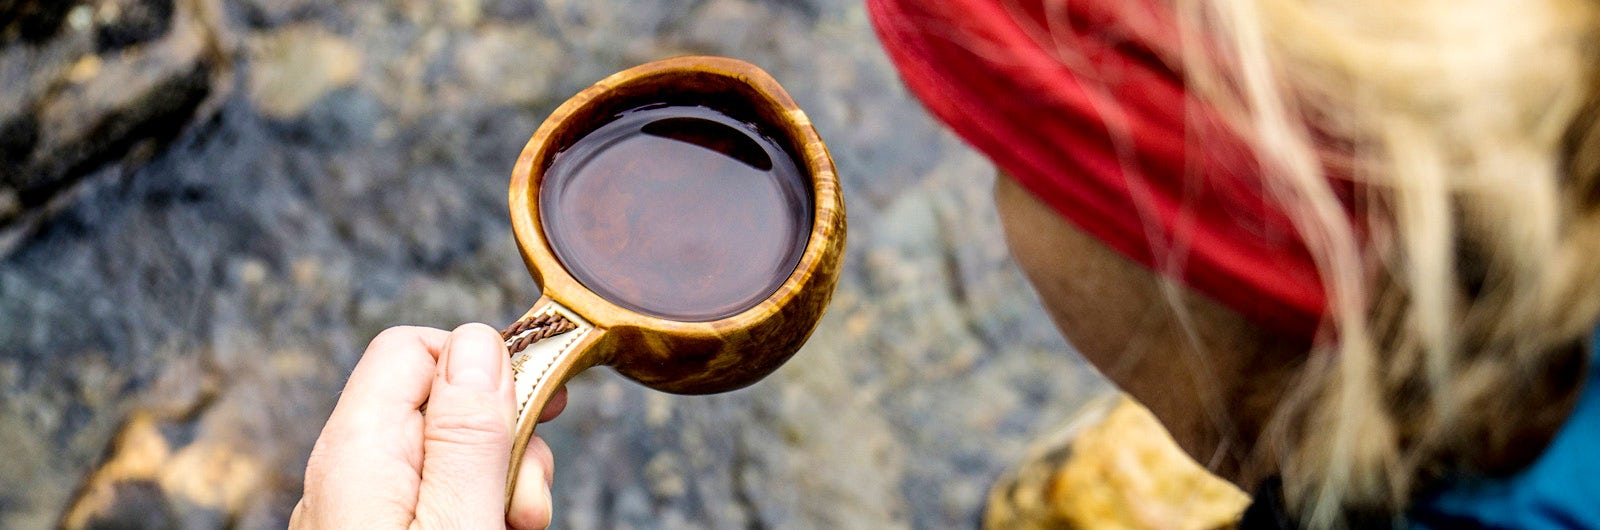 Drinking water from wooden cup